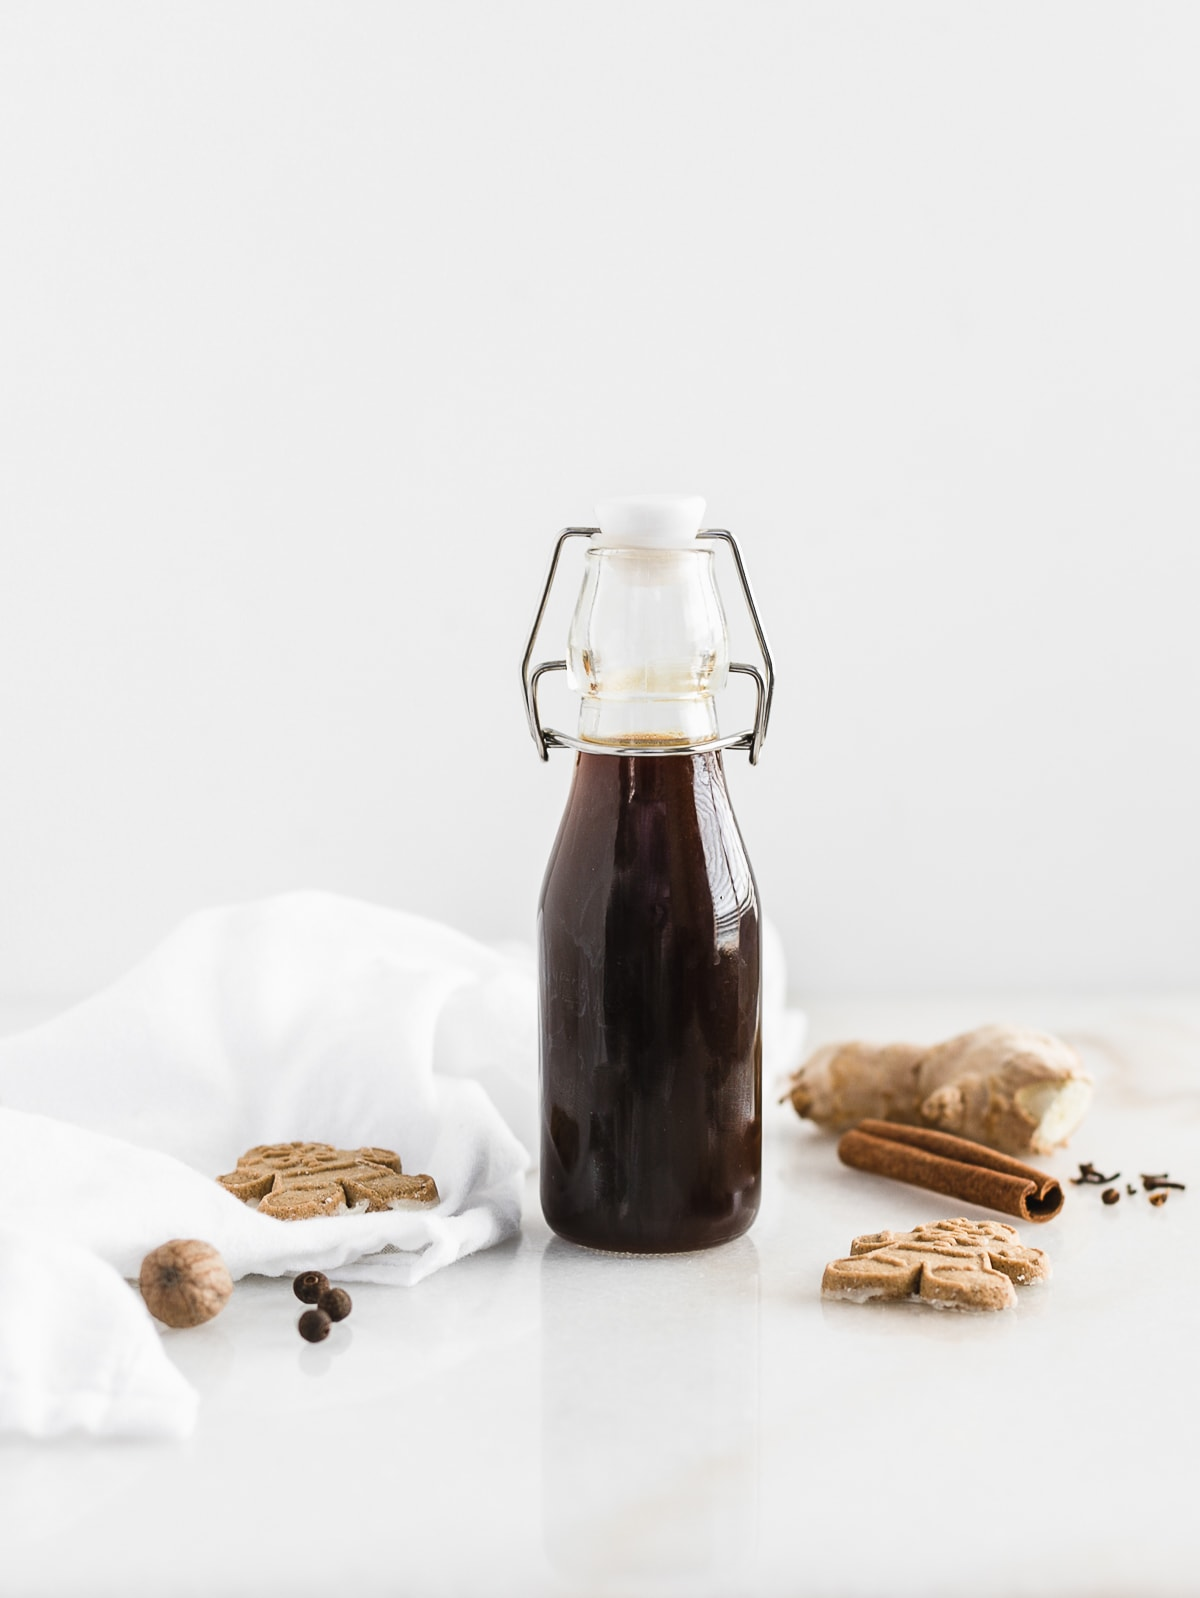 Gingerbread syrup in a glass container with cinnamon sticks and gingerbread cookies around it.